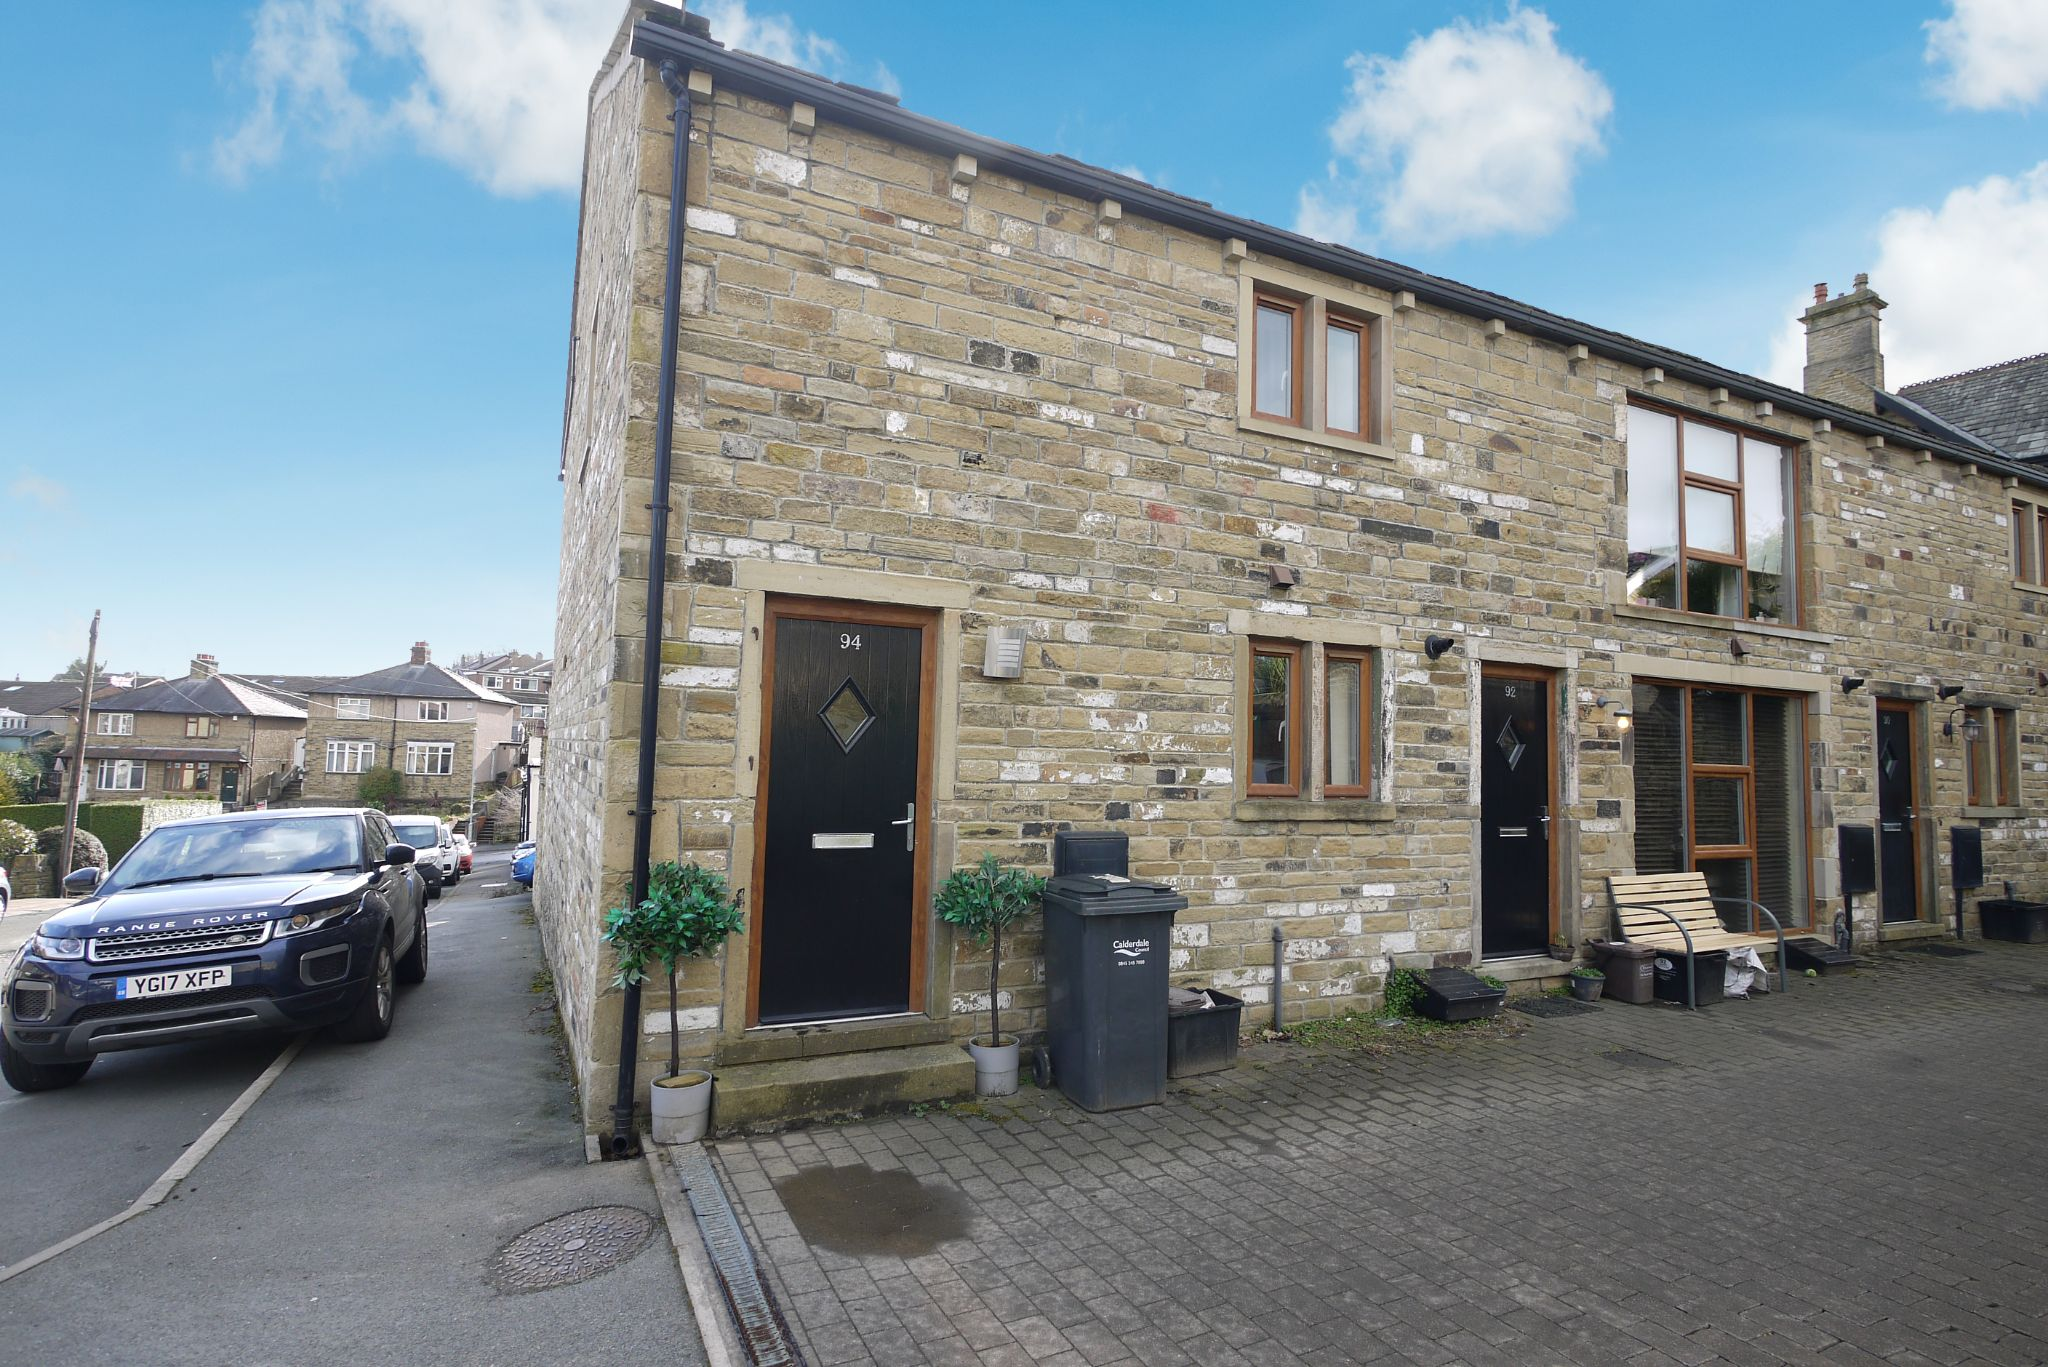 4 bedroom barn character property For Sale in Brighouse - Photograph 1.